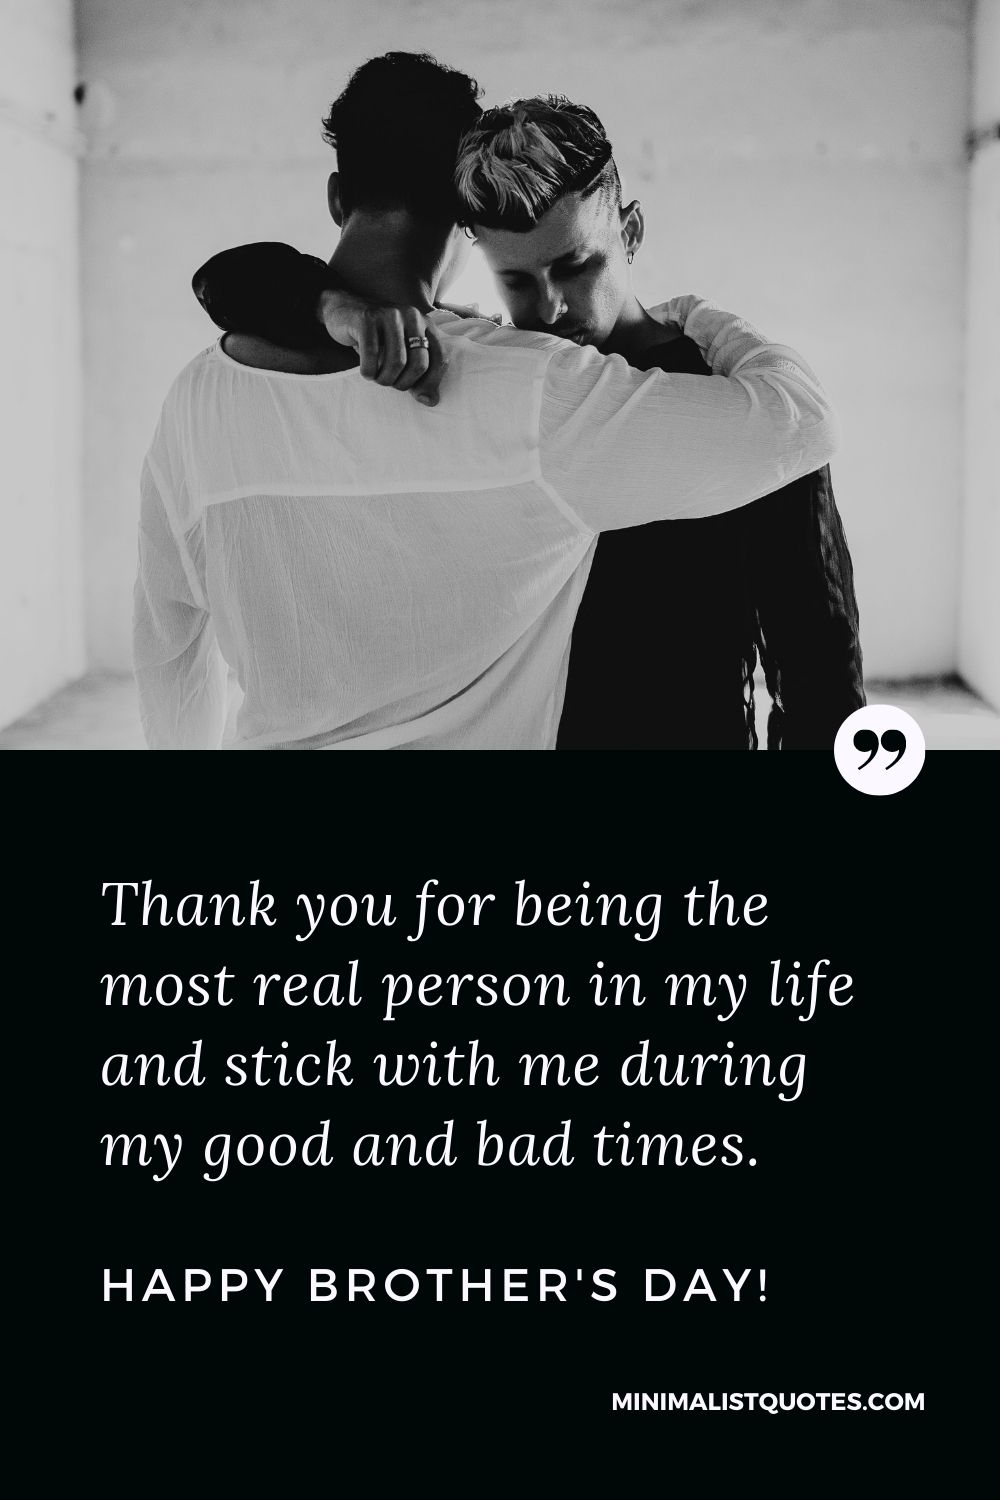 Brother's Day Quote, Wish & Message With Image: Thank you for being the most real person in my life and stick with me during my good and bad times. Happy Brother's Day!